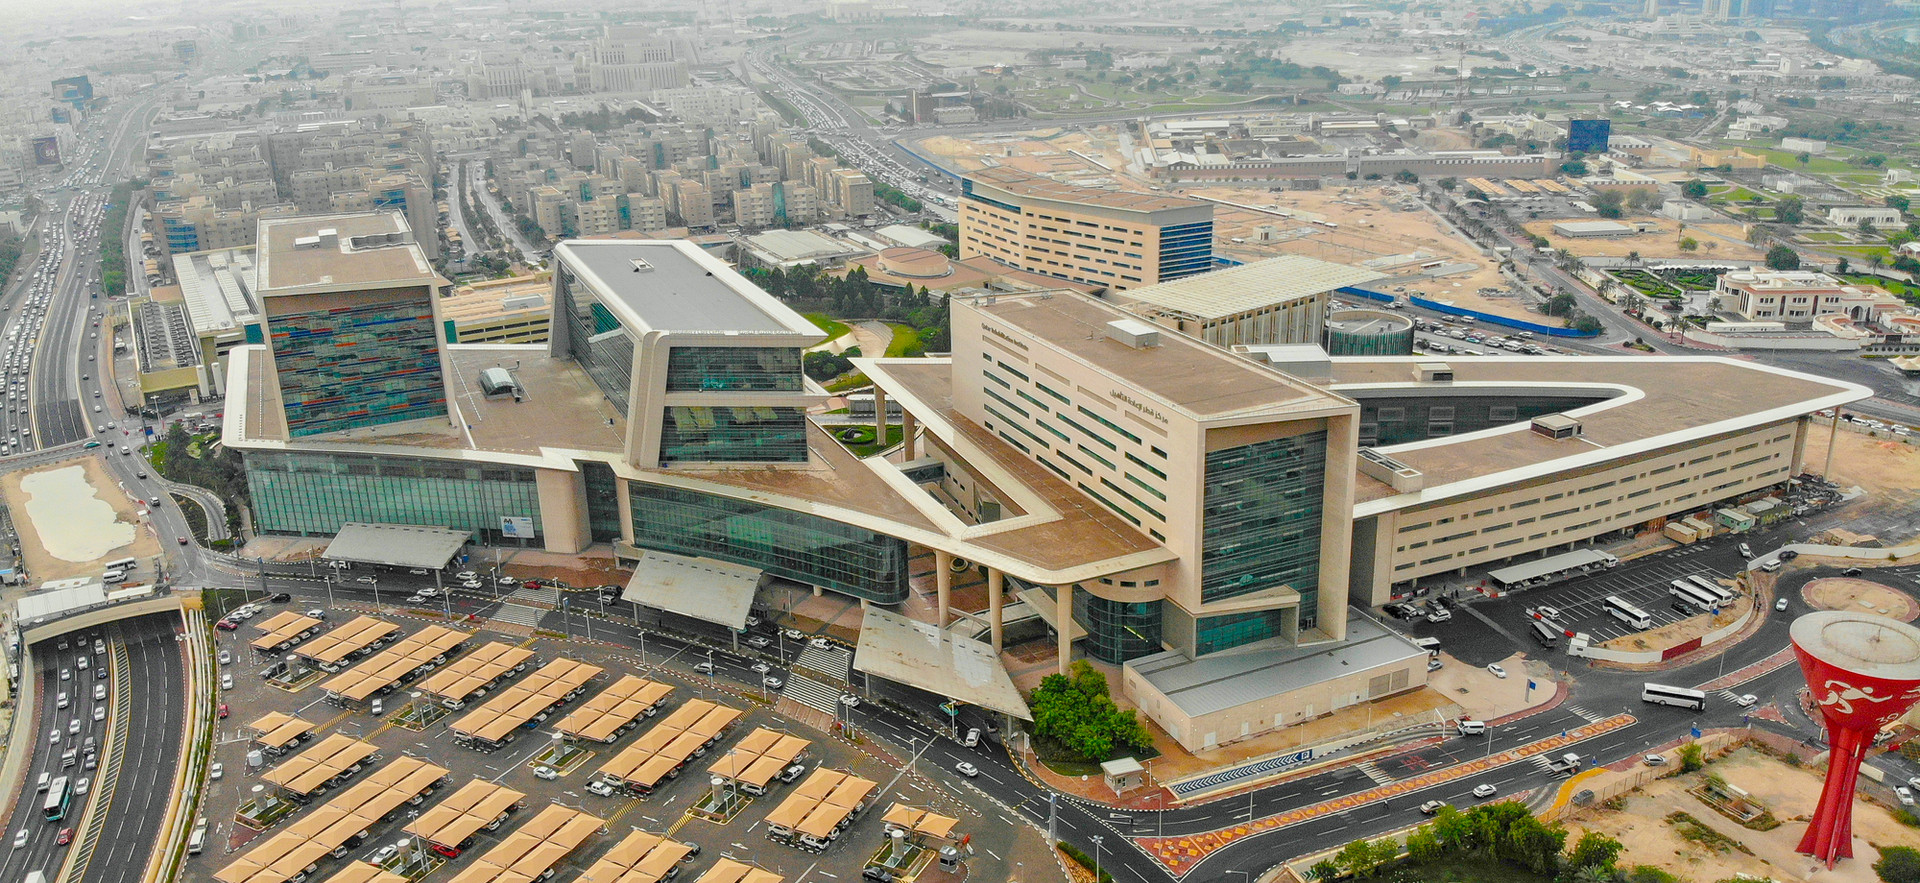 Hamad Bin Khalifa Medical City, Qatar